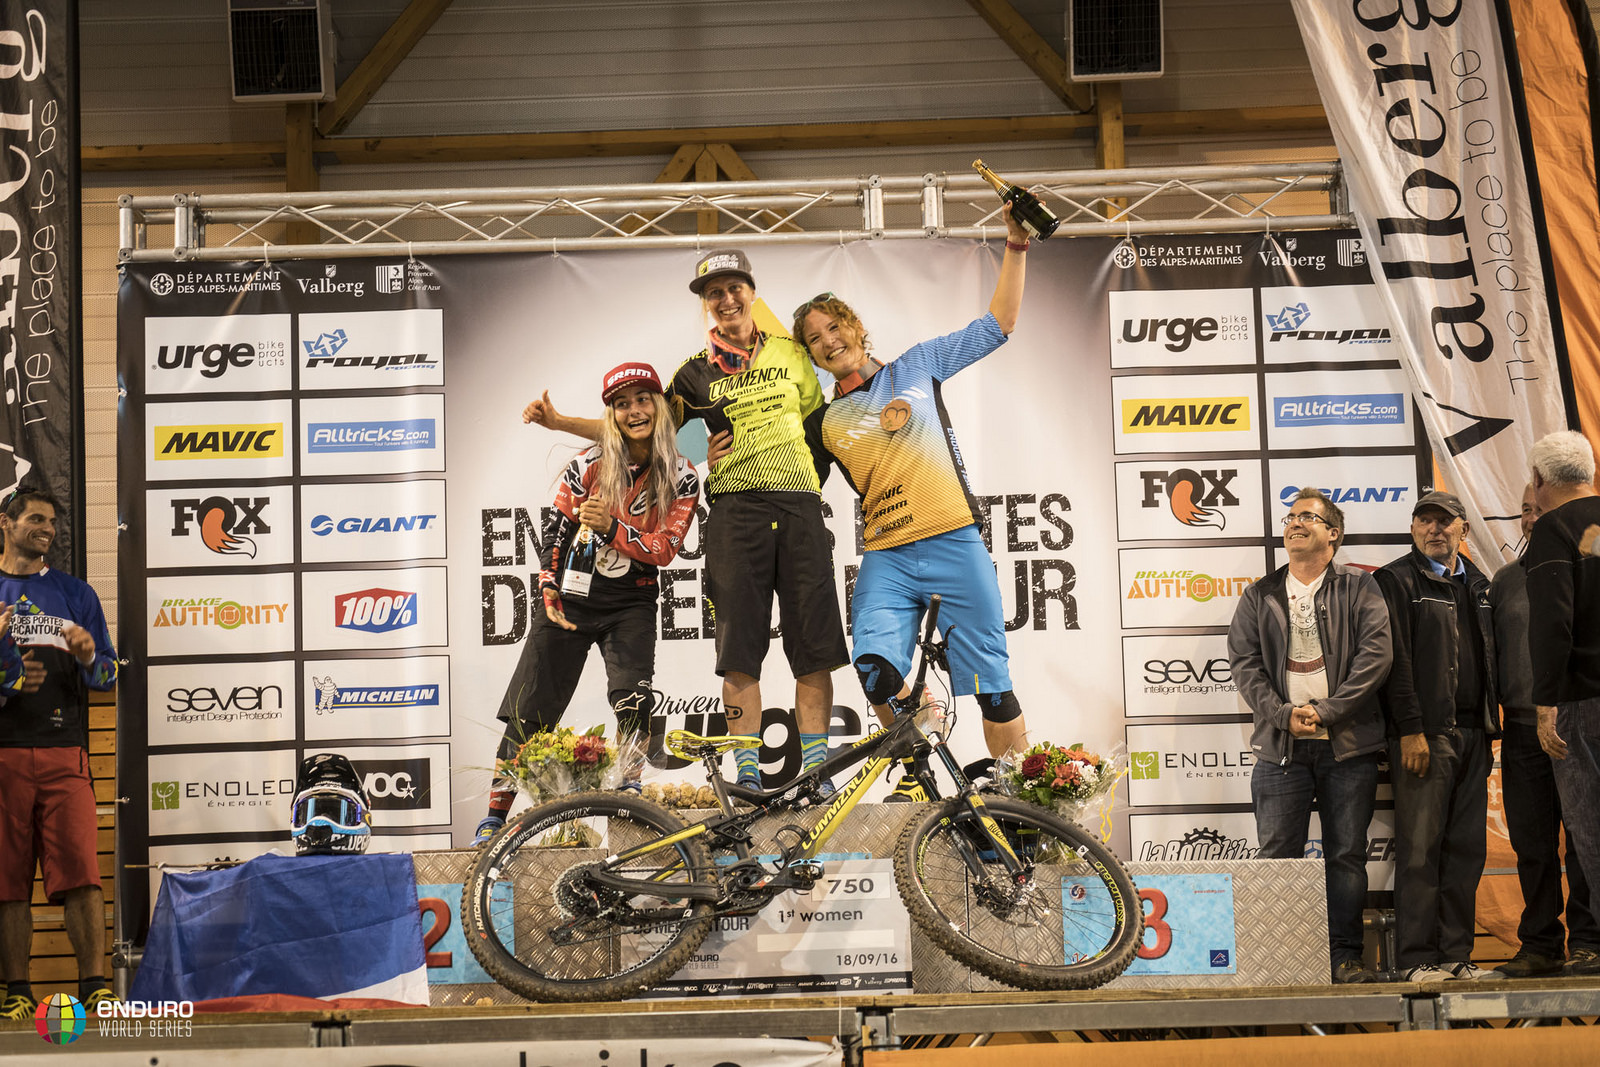 Winning women: Cecile Ravanel, Isabeau Courdurier and Ines Thoma.